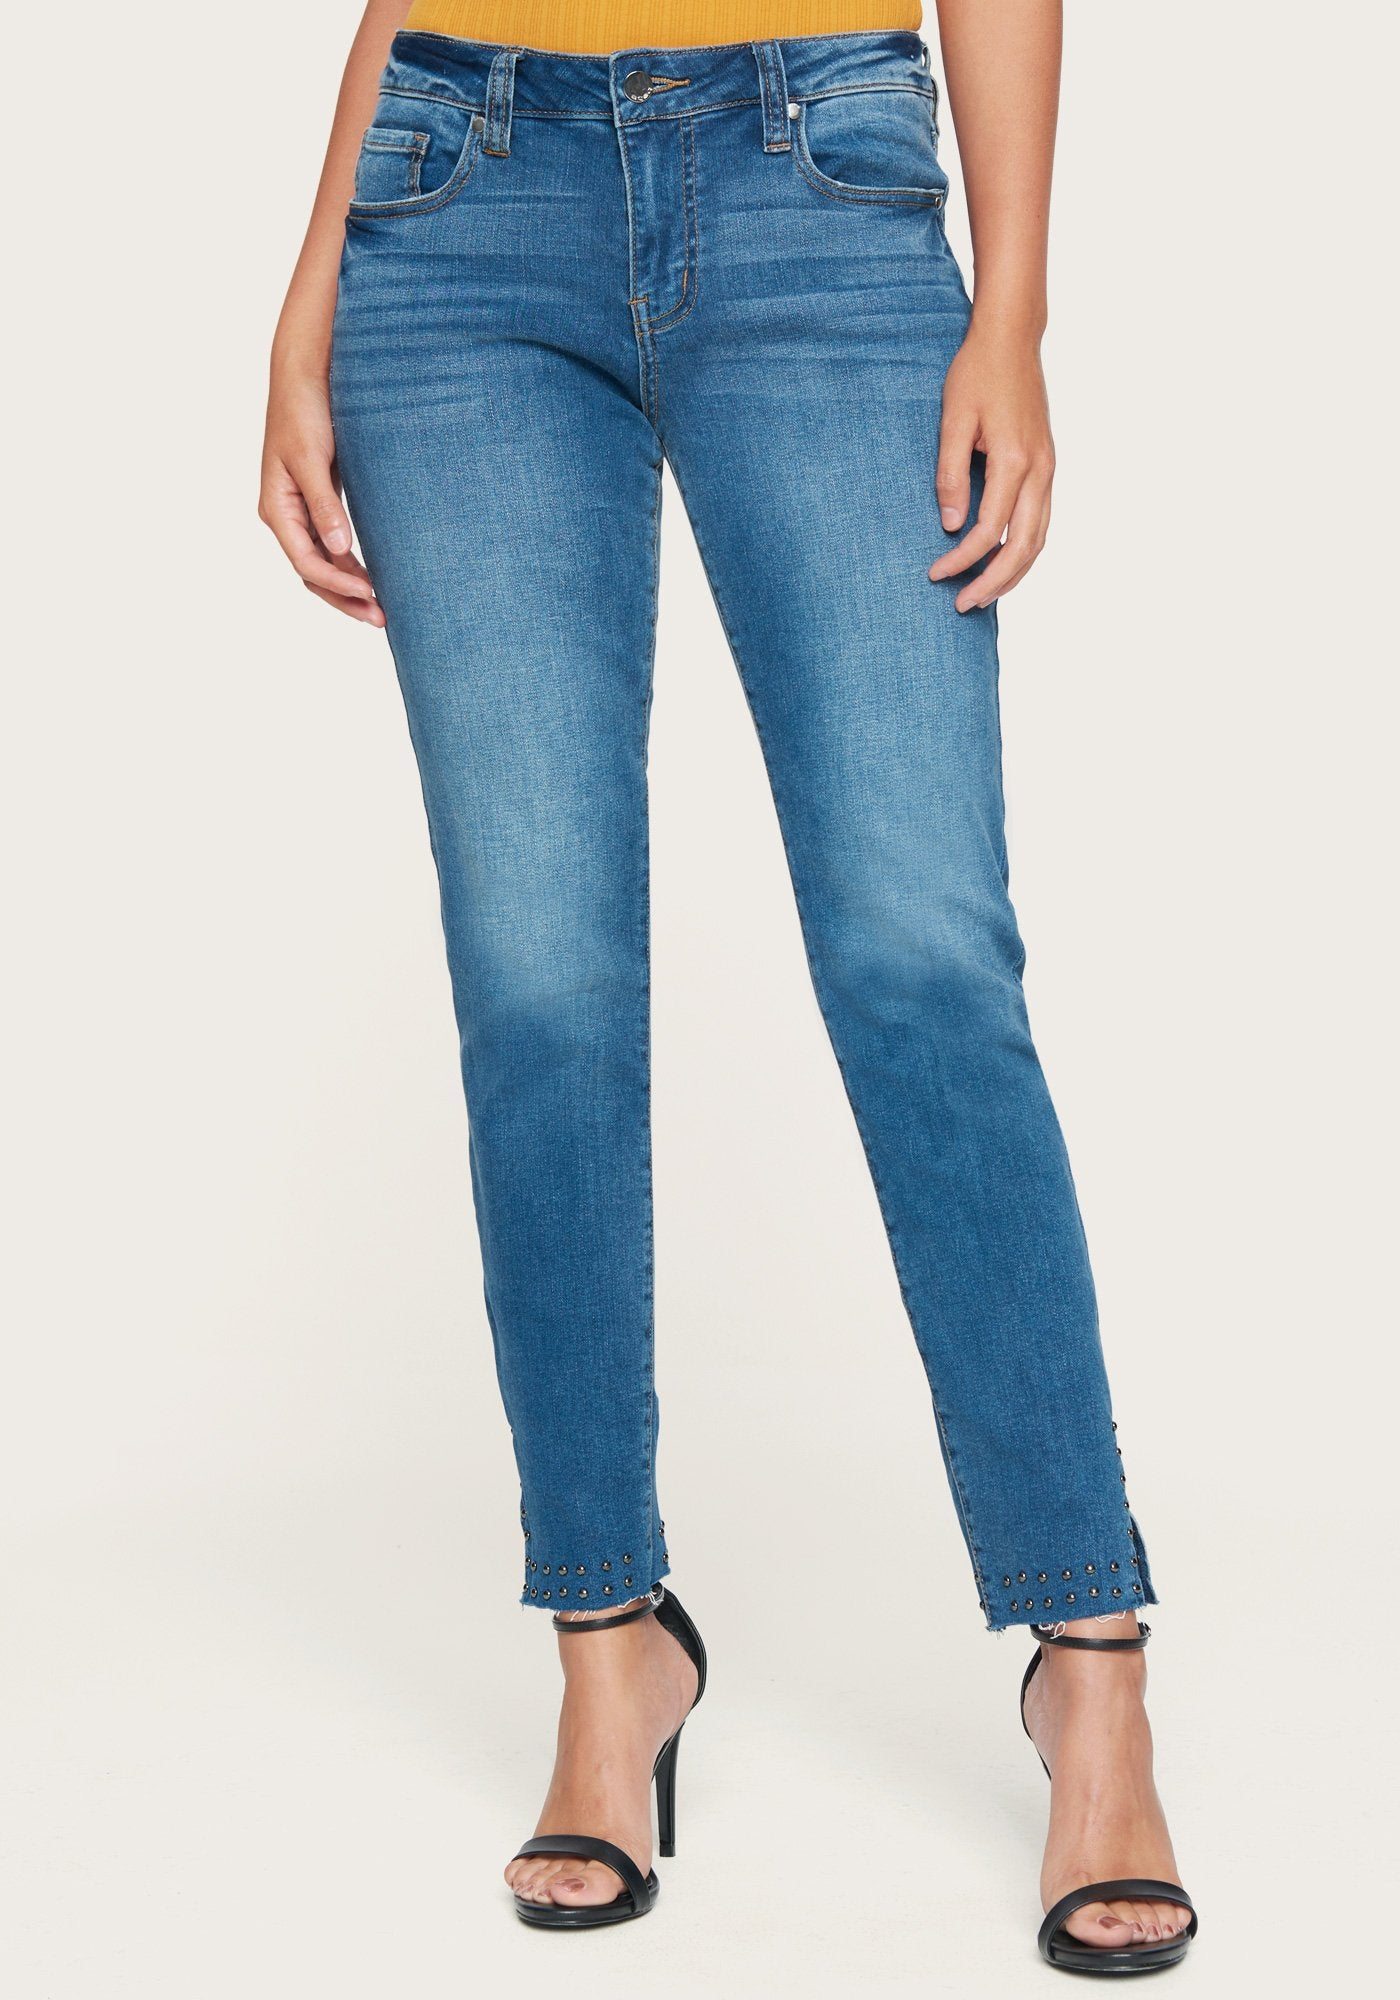 Bebe Women's Stud Detail Skinny Jeans, Size 25 in Rising Blue Cotton/Spandex